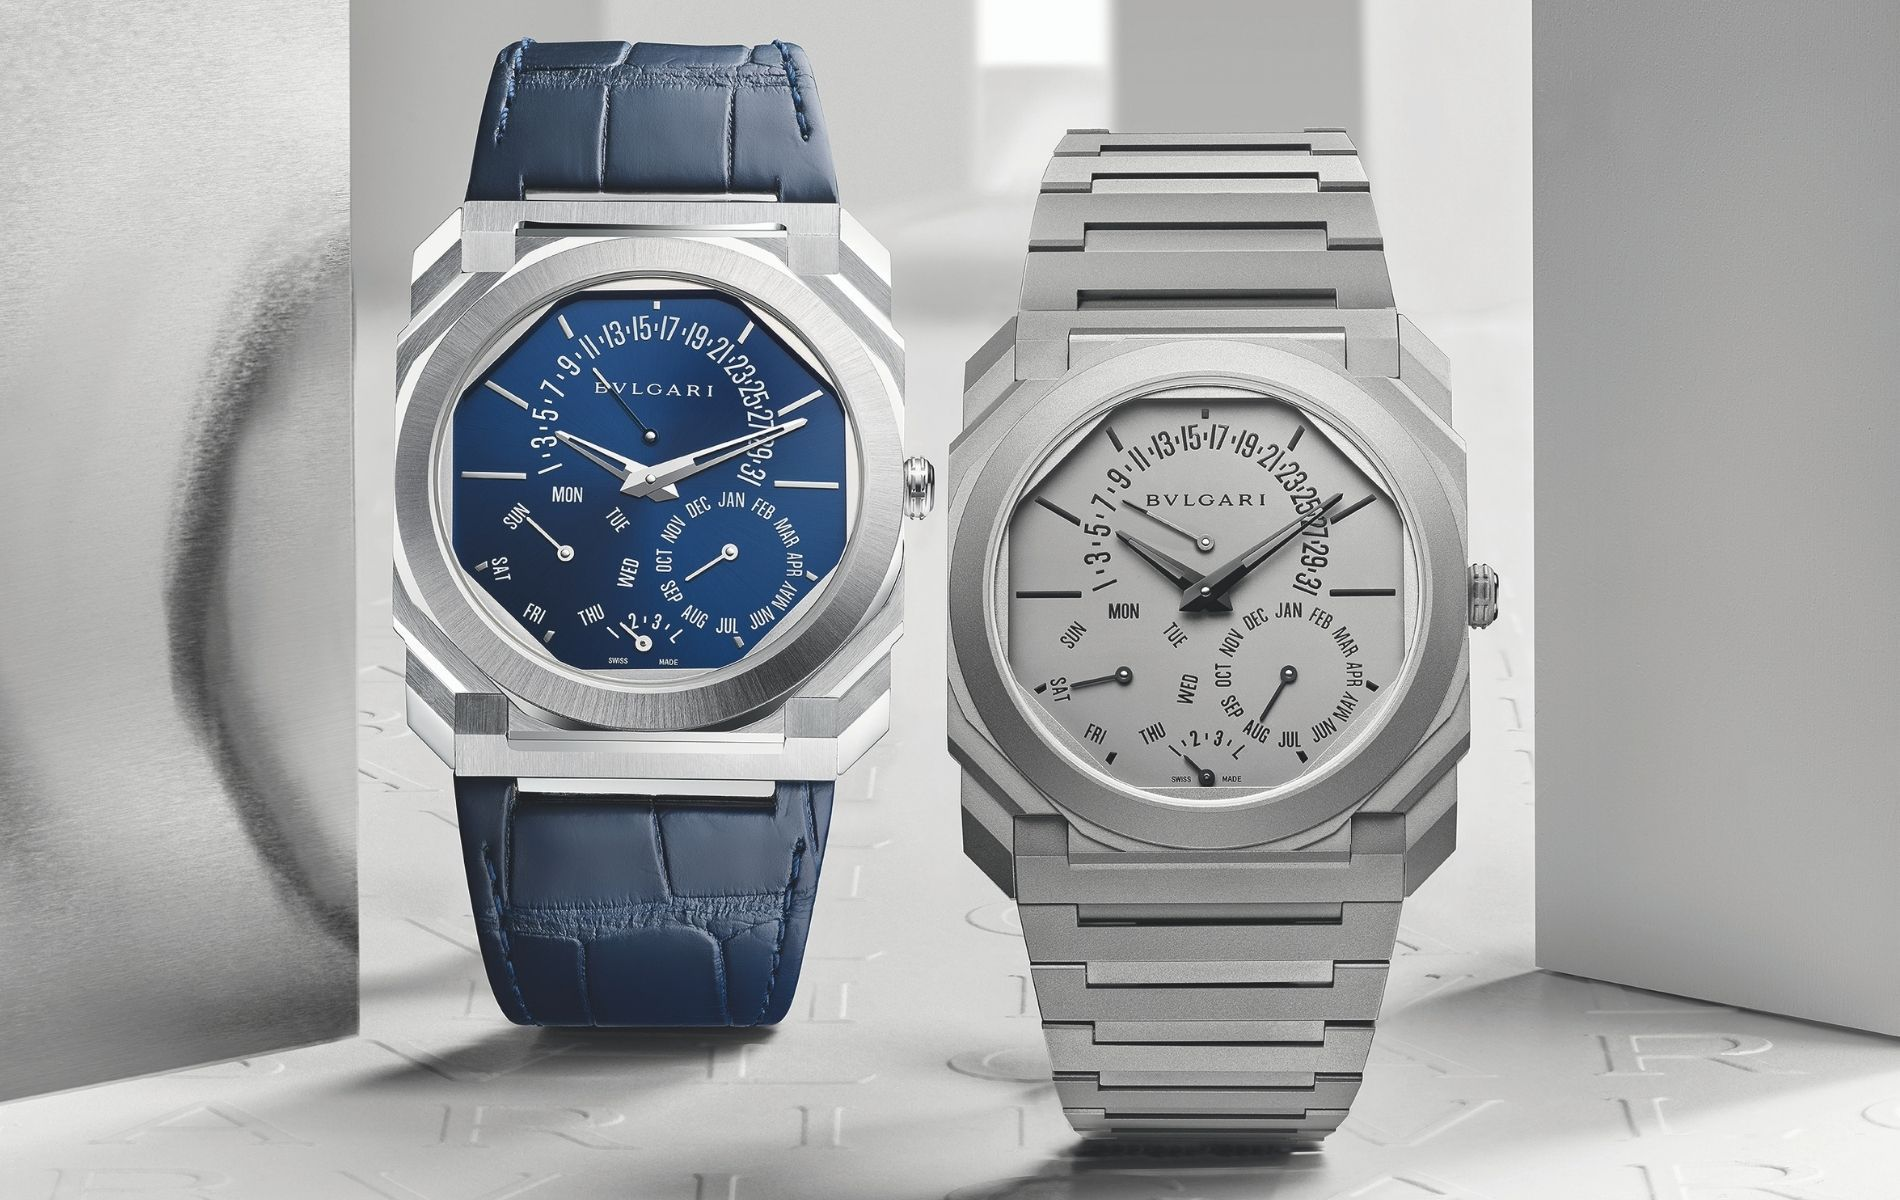 Bulgari Octo Finissimo Perpetual Calendar is the slimmest of its kind ever produced